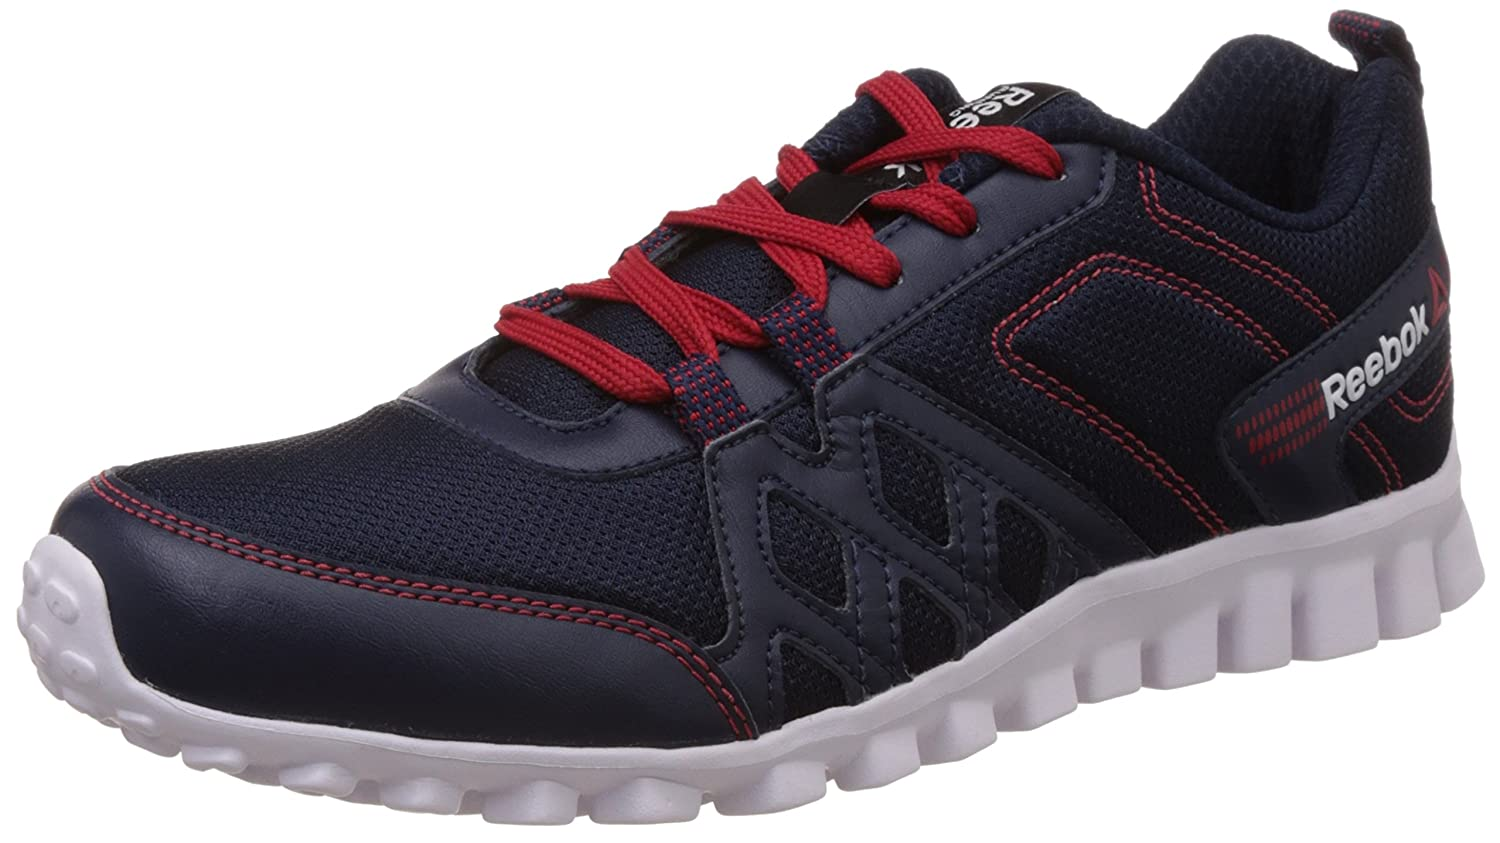 size 40 df631 a780e Reebok Boy s Run Fusion 2.0 Jr Dark Blue, Red Rush and White Sports Shoes -  5.5 UK  Buy Online at Low Prices in India - Amazon.in